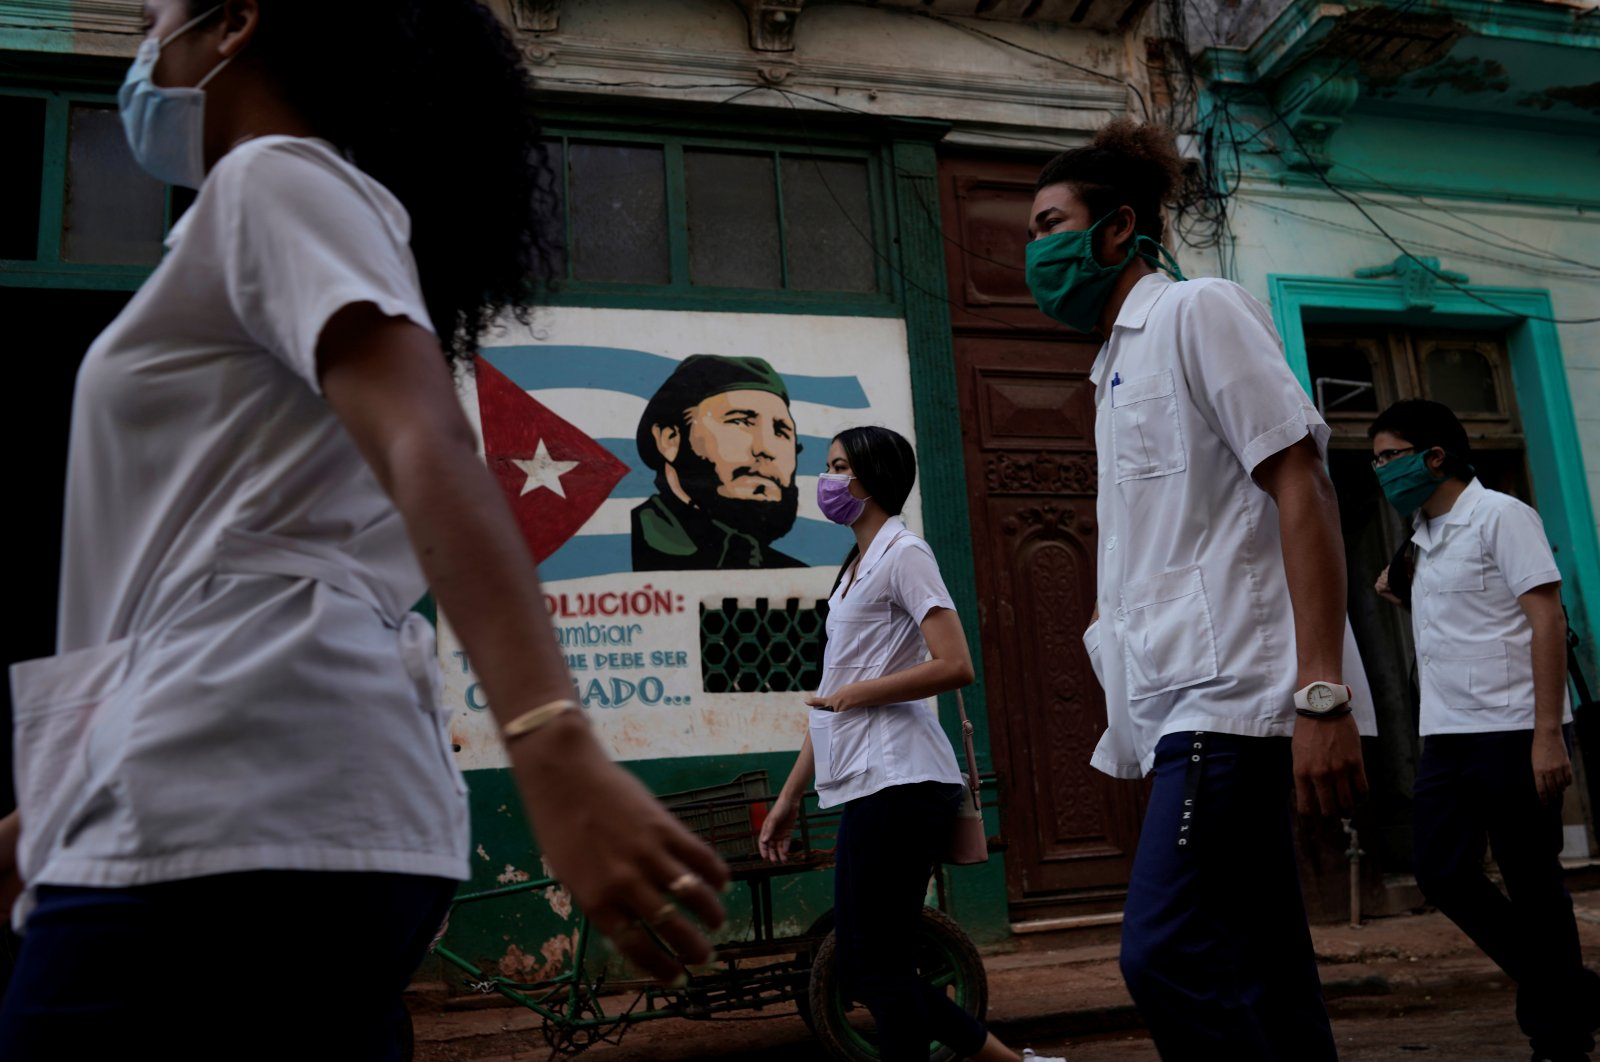 Medical students walk past an image of late Cuban President Fidel Castro in downtown Havana, Cuba, May 12, 2020. (Reuters Photo)